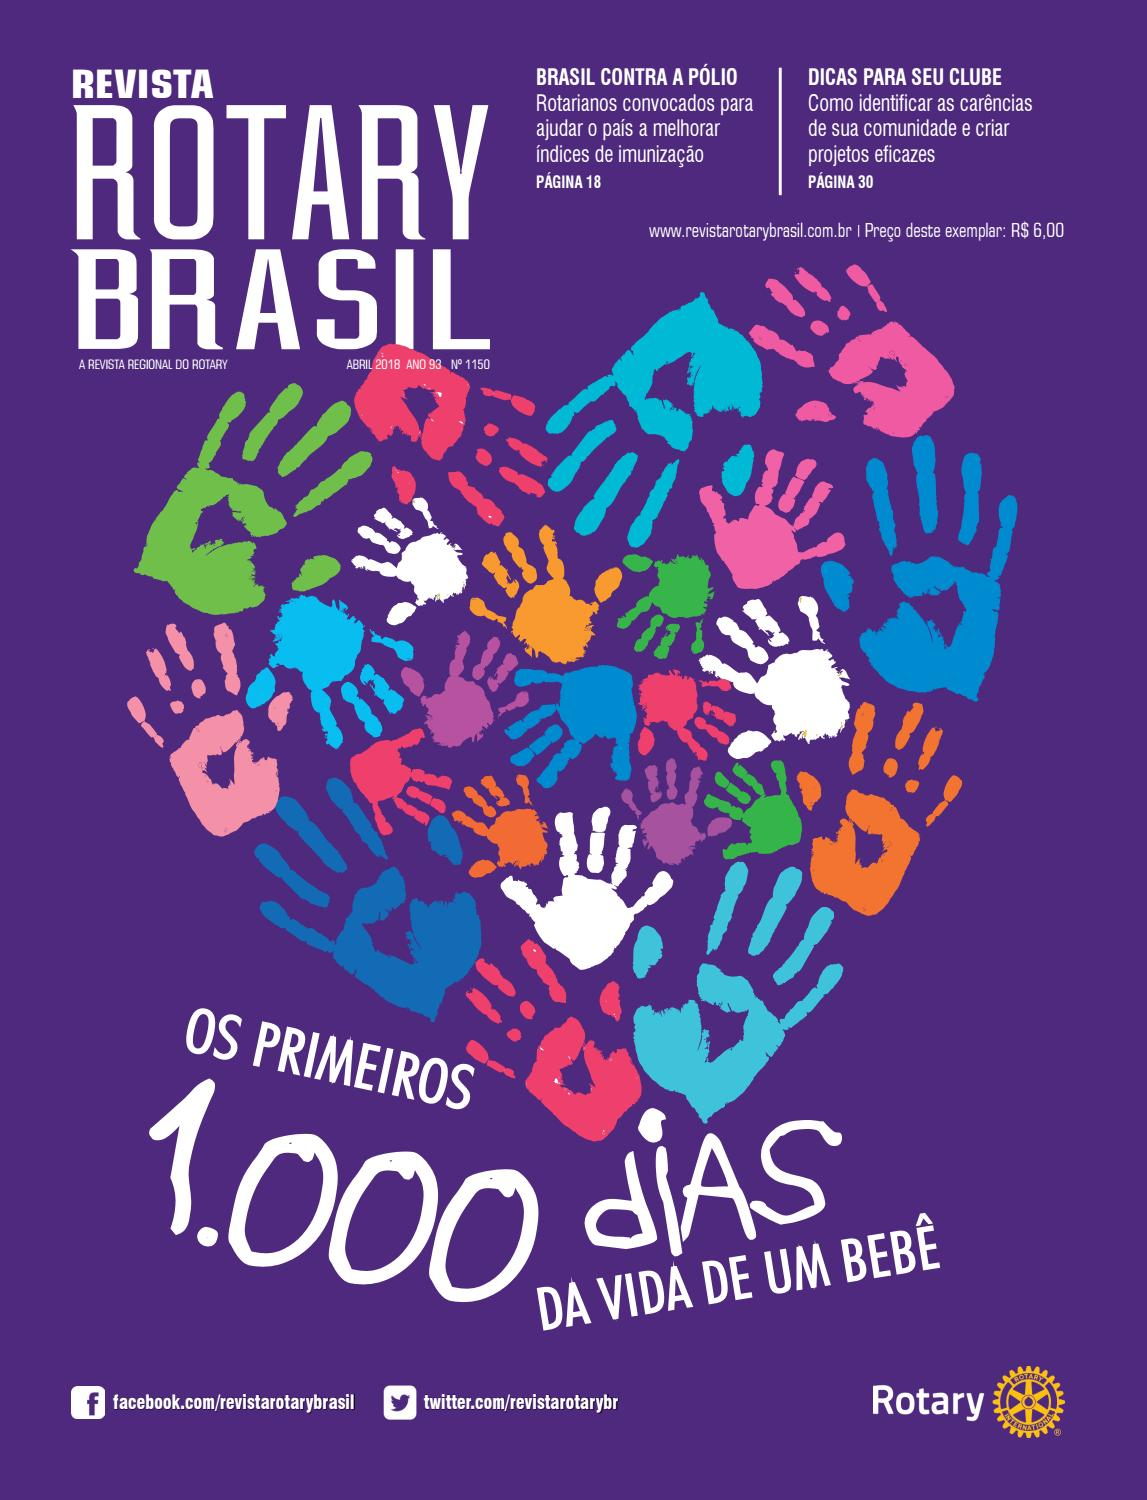 f9a0f31d3bb Revista Rotary Brasil - Abril de 2018 by Revista Rotary Brasil - issuu